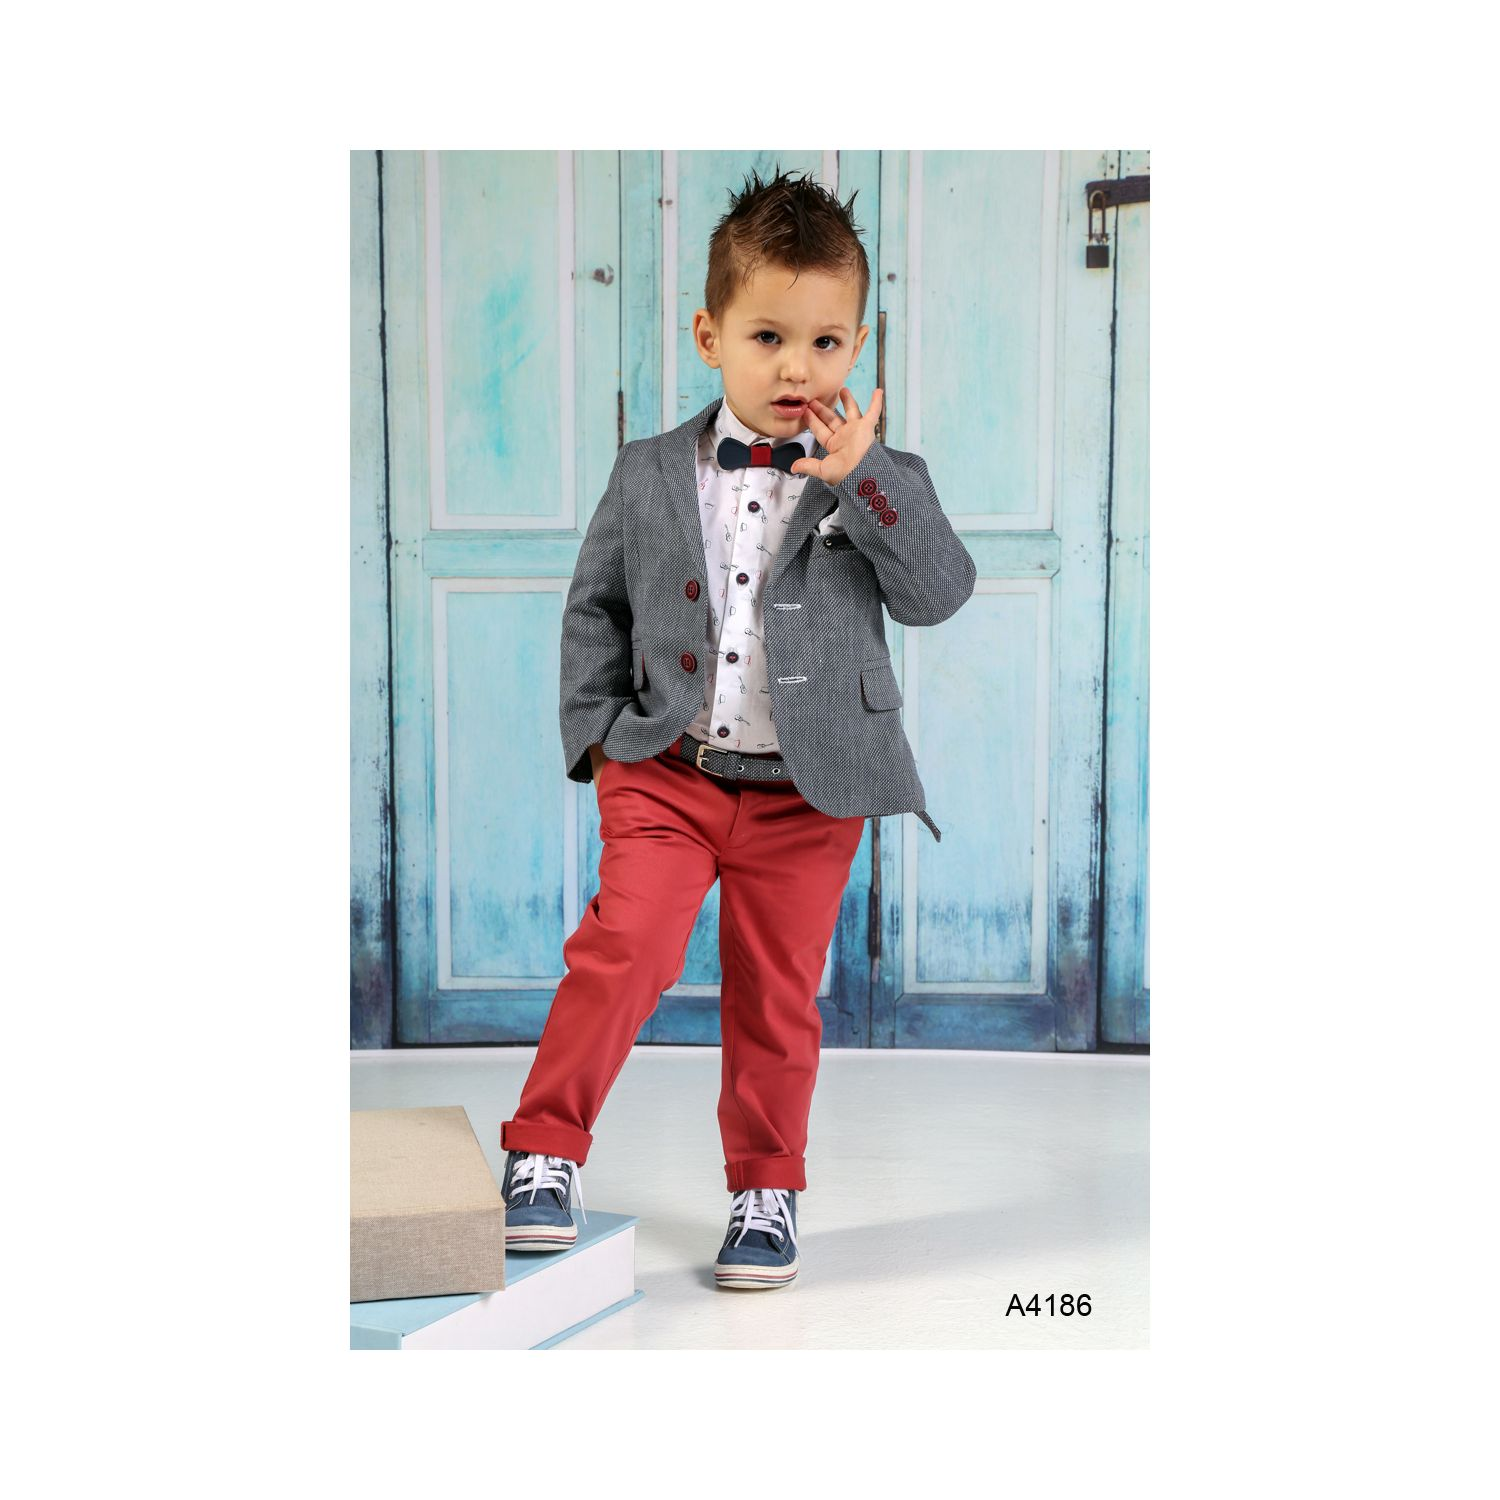 Greek Christening suit for boy A4186